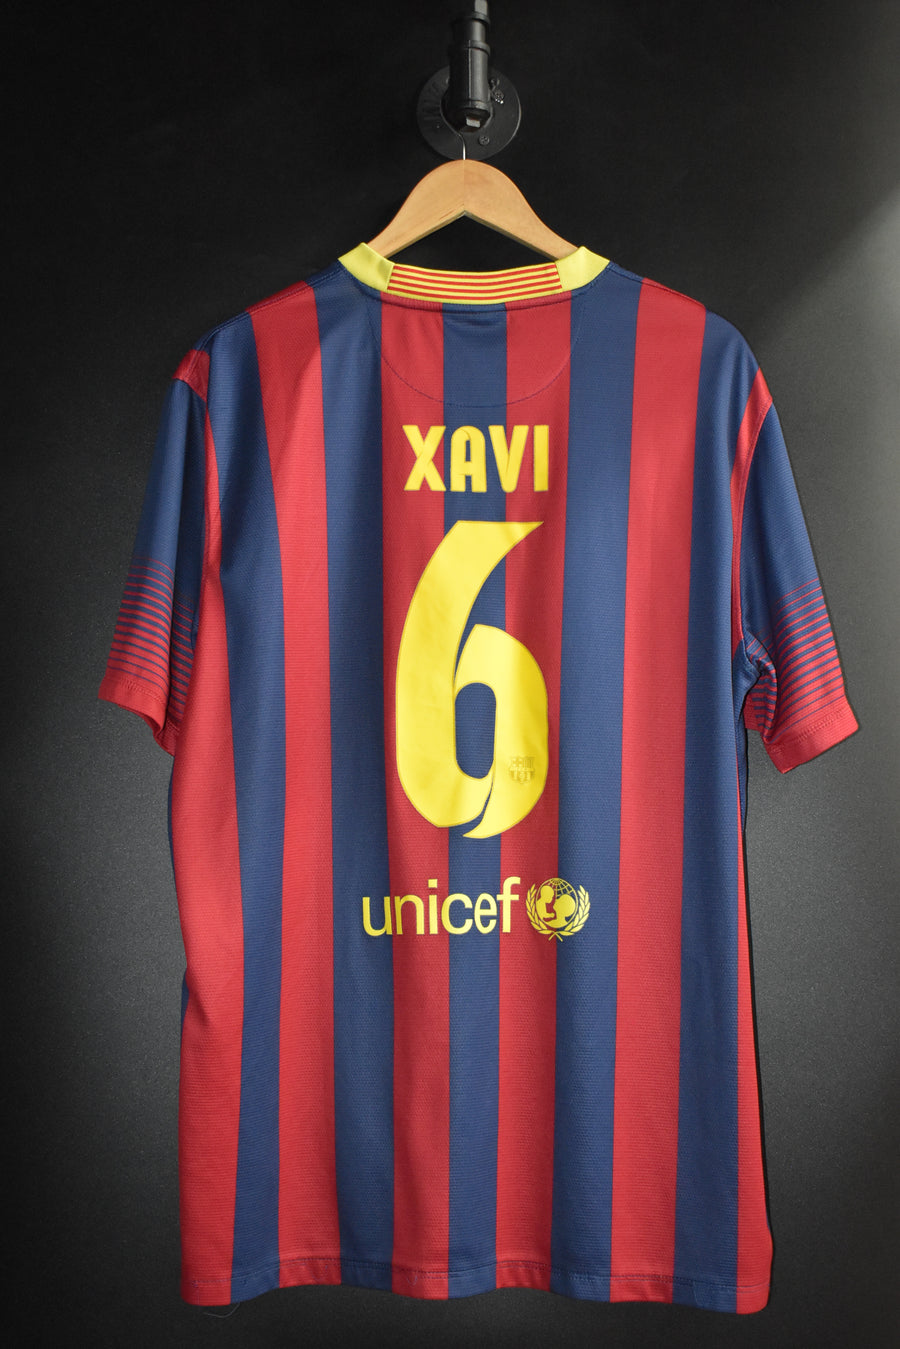 USA 1995 COPA AMERICA ORIGINAL JERSEY Size L (GOOD)